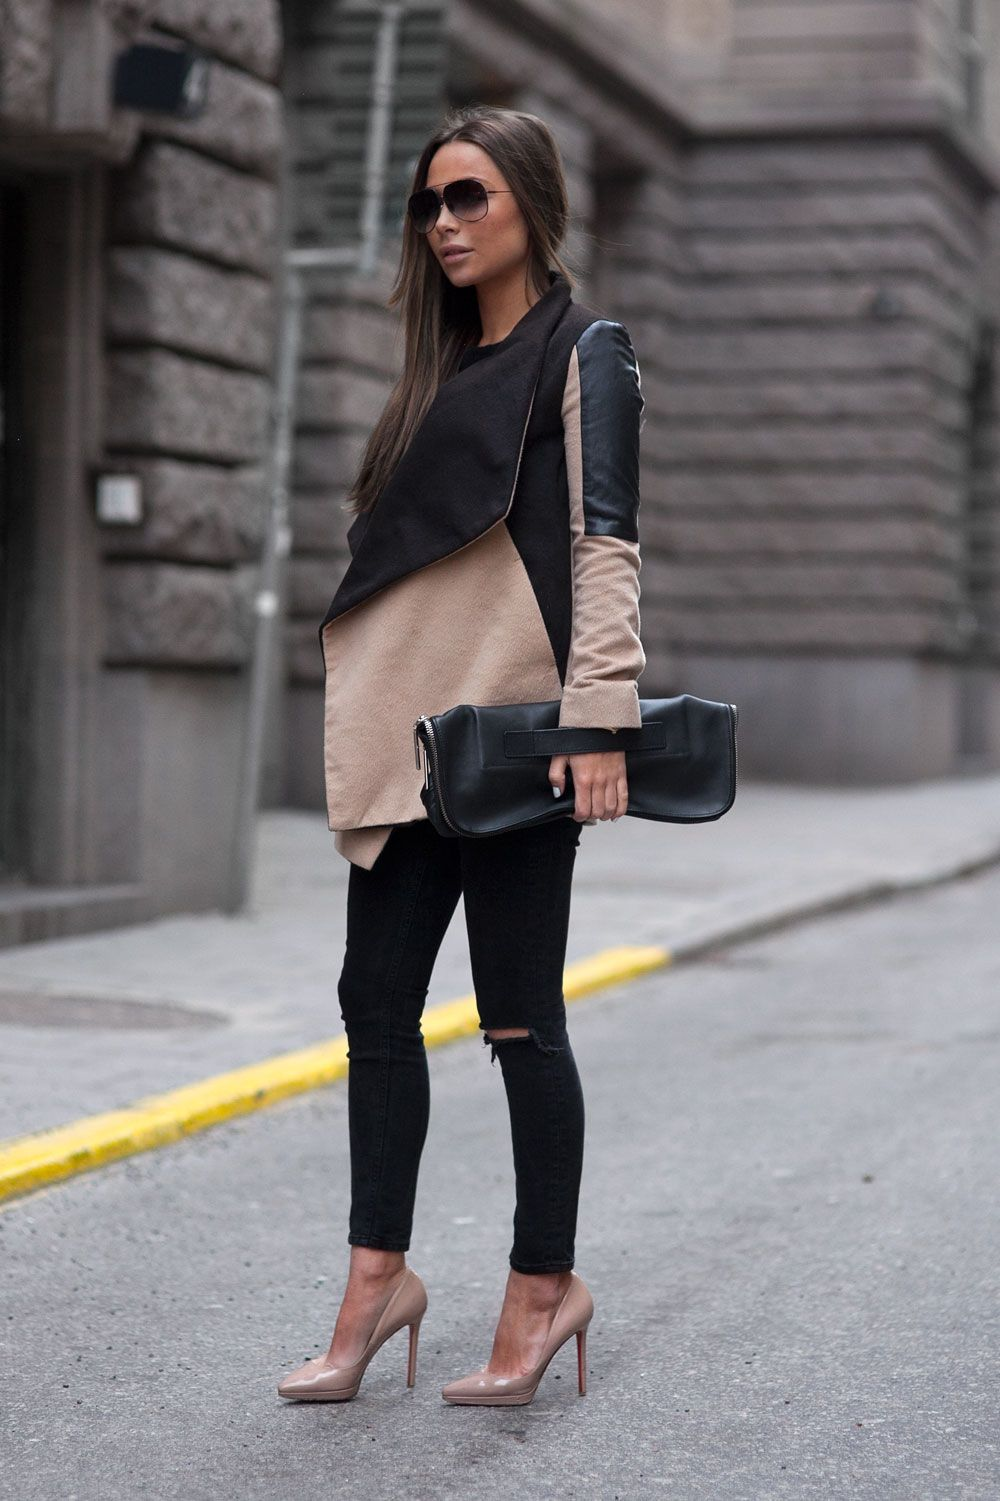 Black And Camel Outfits - This Is How To Style The Look | Nude ...